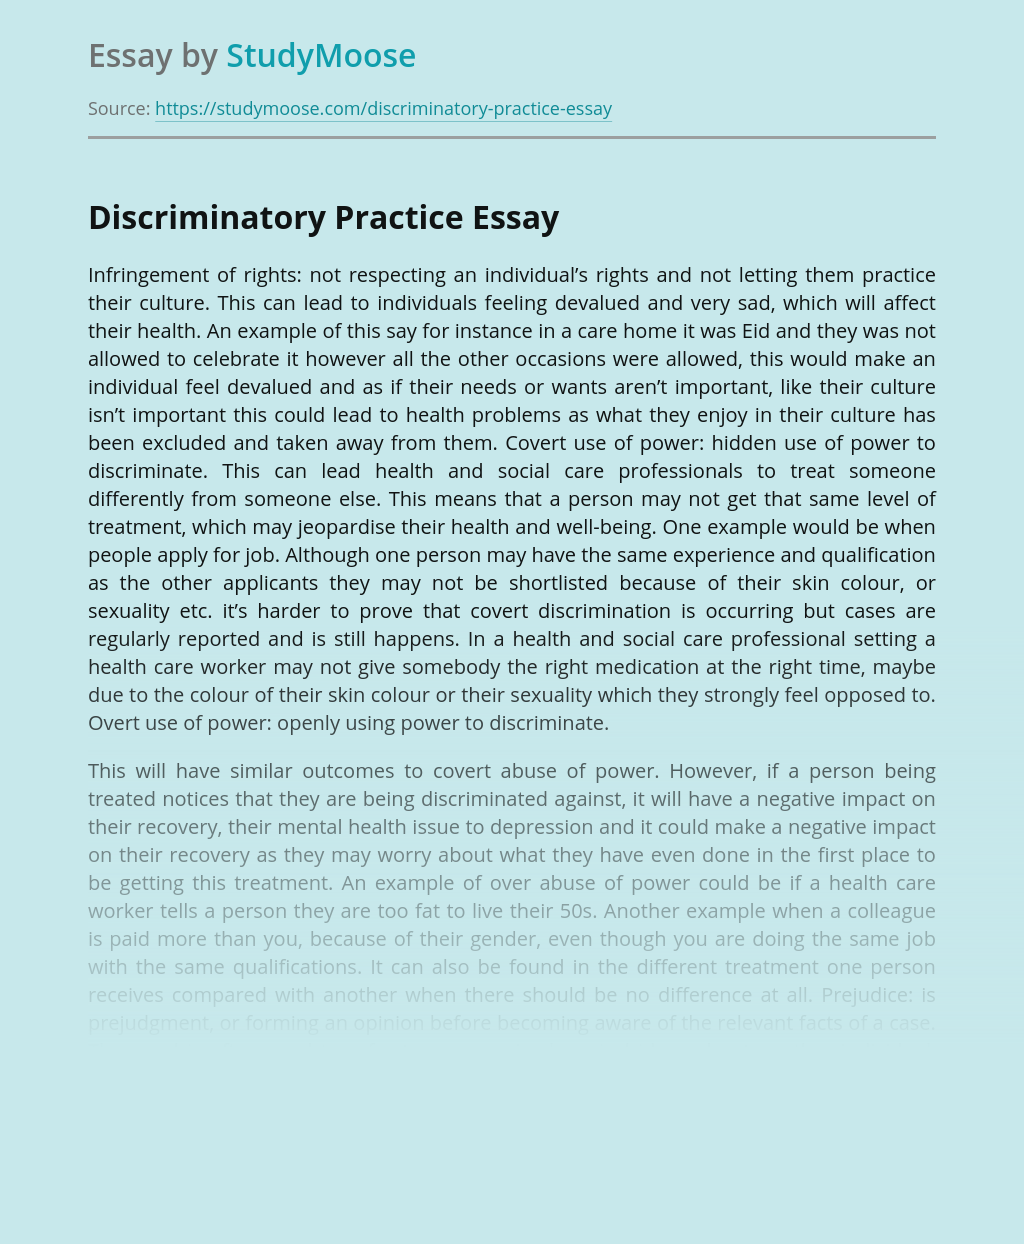 Discriminatory Practice And Health and Social Care Professionals